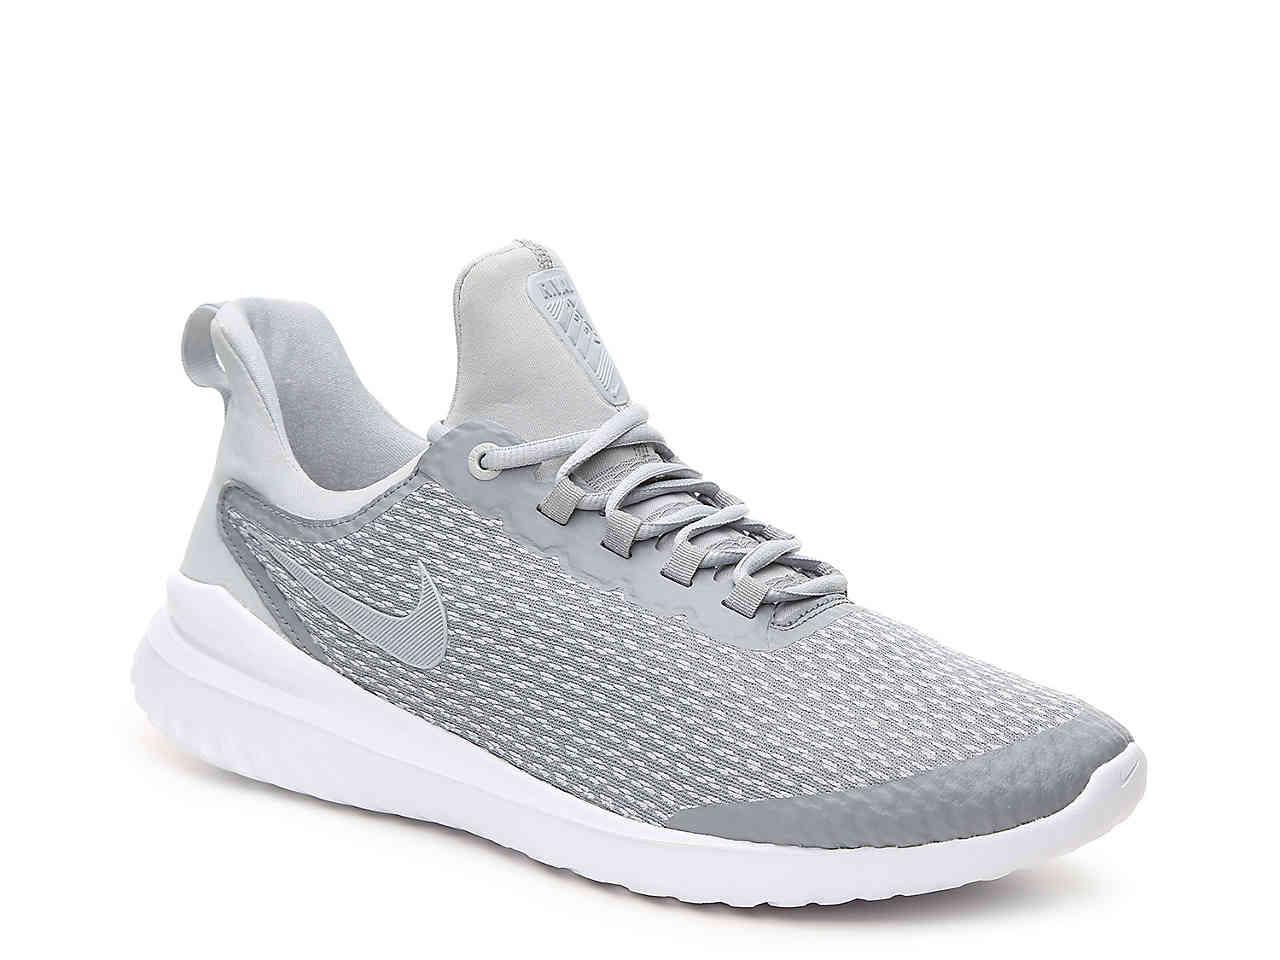 053086201a4f4 ... get lyst nike renew rival lightweight running shoe in gray for men  1ff33 0dbd9 ...